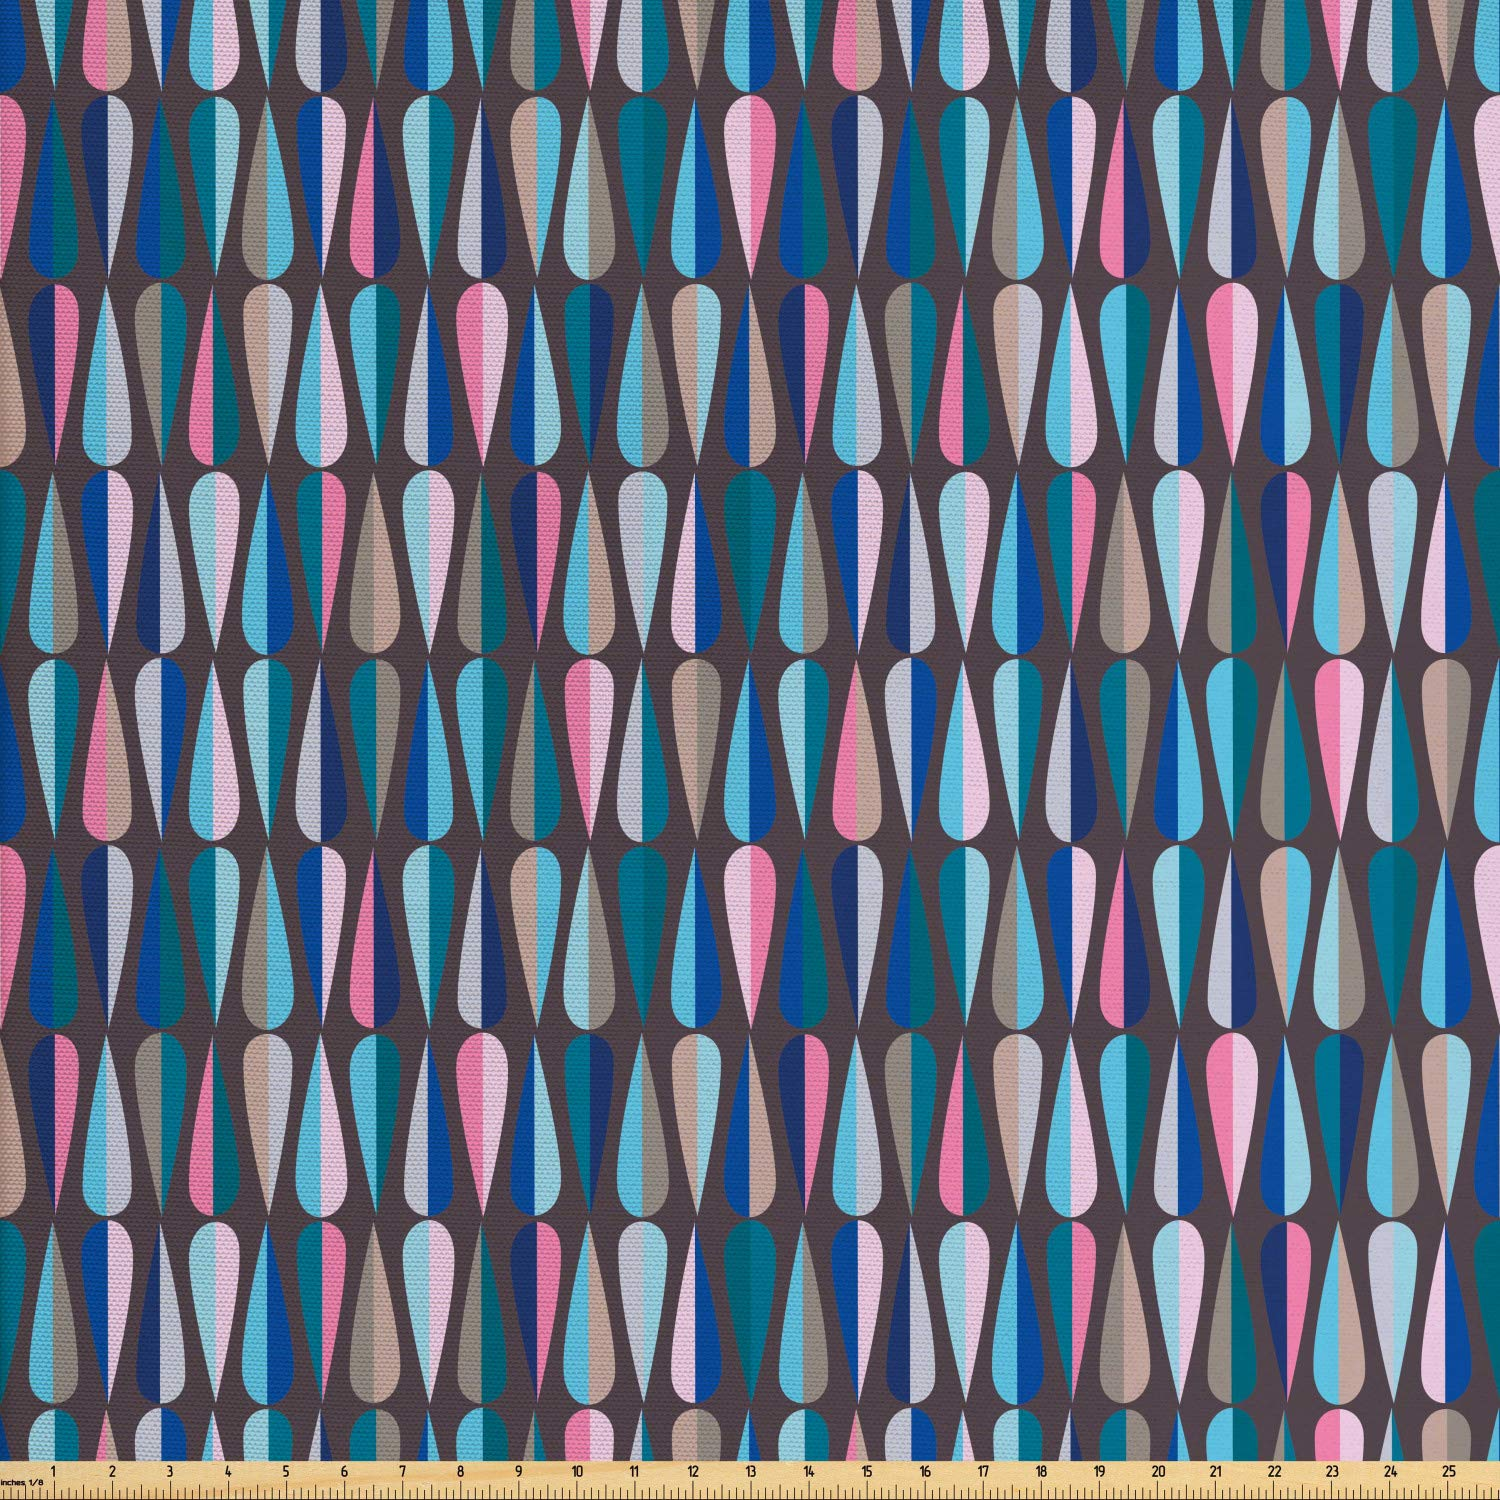 Ambesonne Mid Century Fabric by The Yard, Modern Style Retro Pattern with Droplet Shapes Mosaic in Tones, Decorative Fabric for Upholstery and Home Accents, 2 Yards, Multicolor